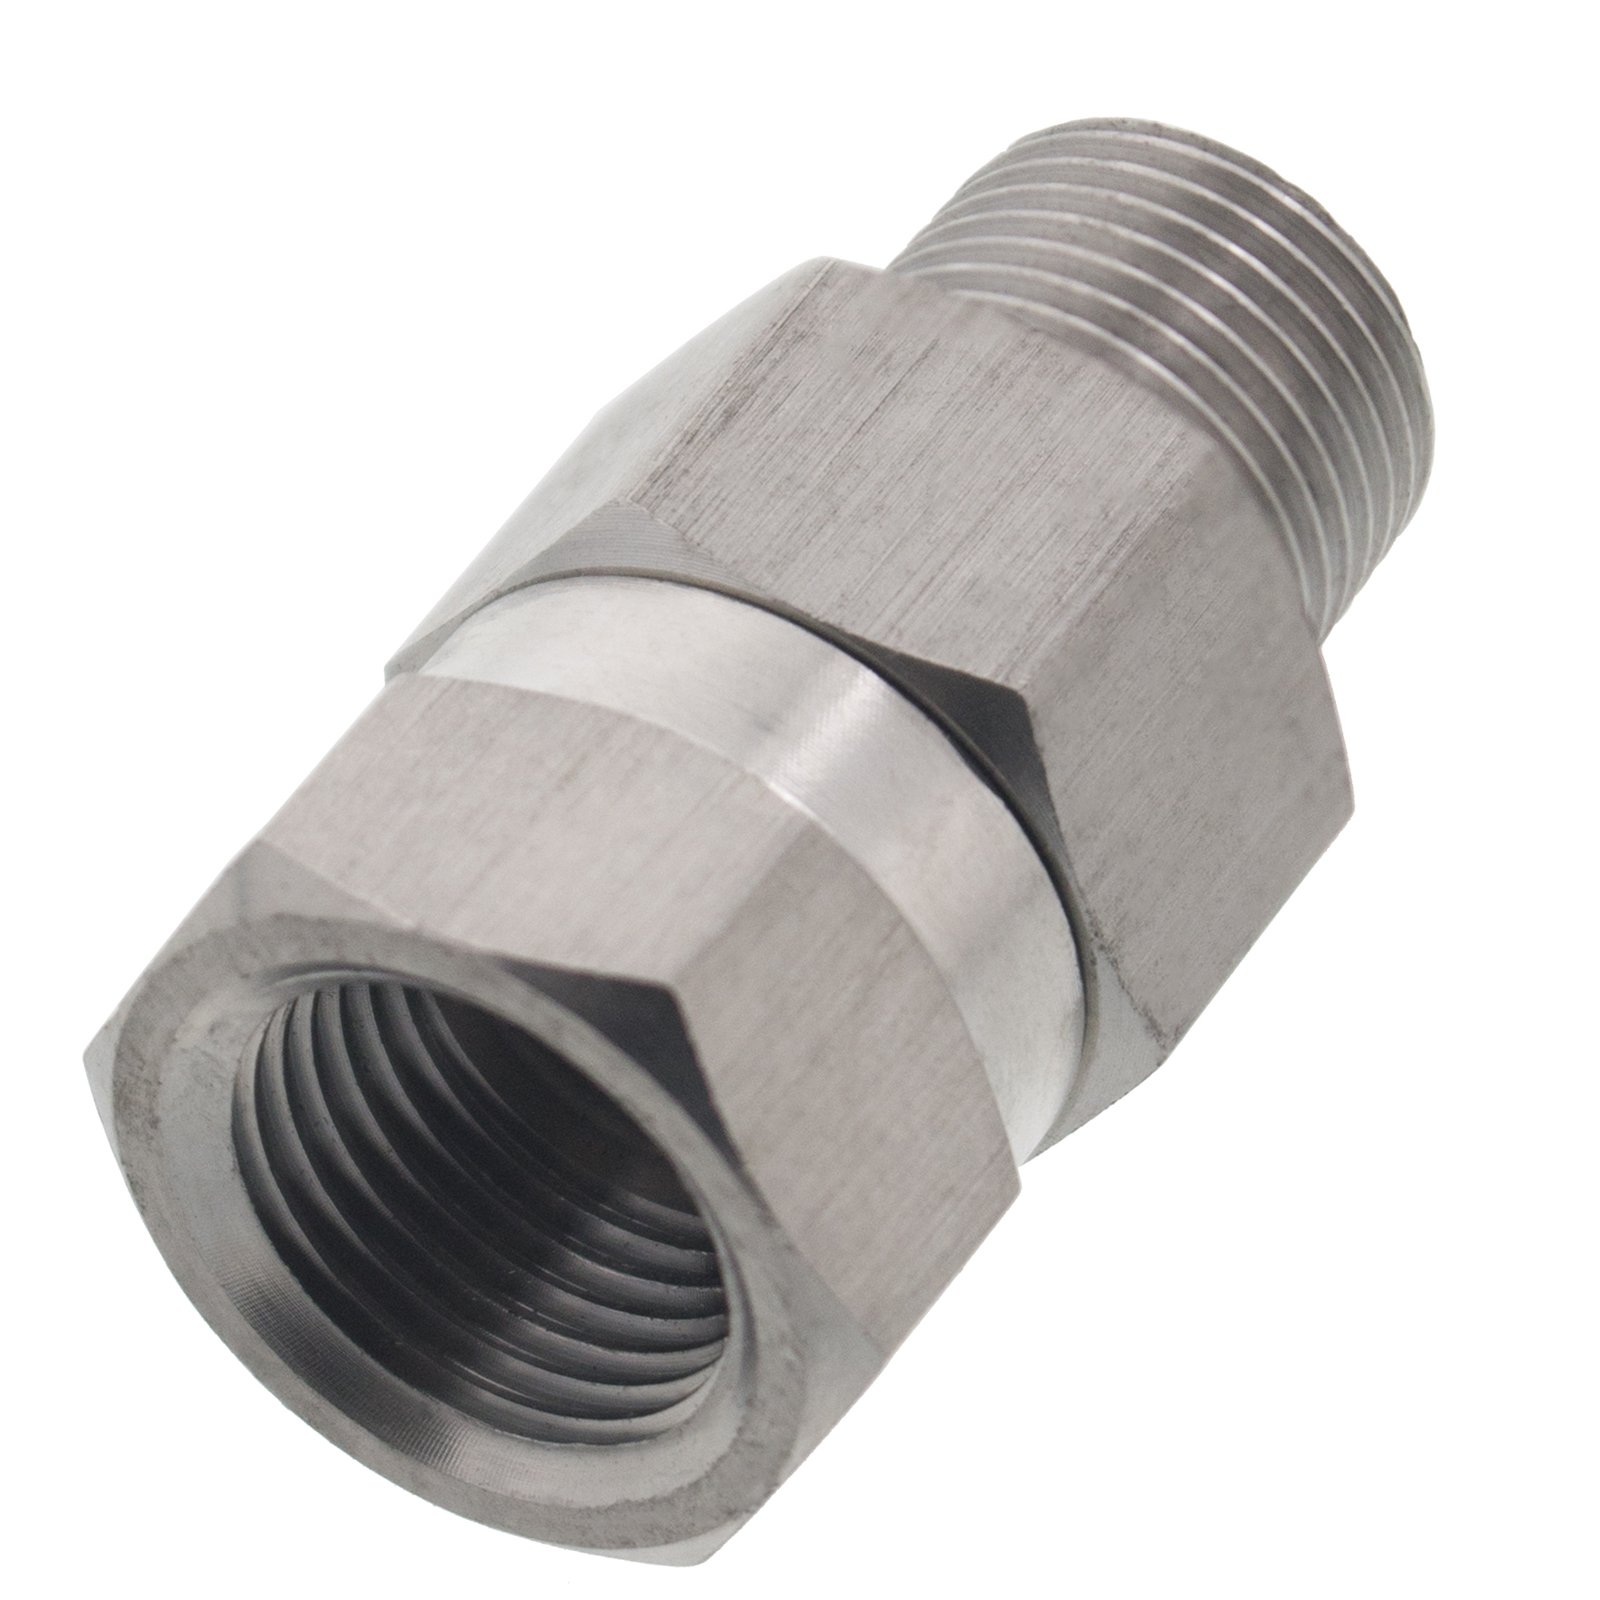 Erie Tools Pressure Washer 3/8'' Male Female NPT Stainless Steel Swivel Coupler 3200 PSI by Erie Tools